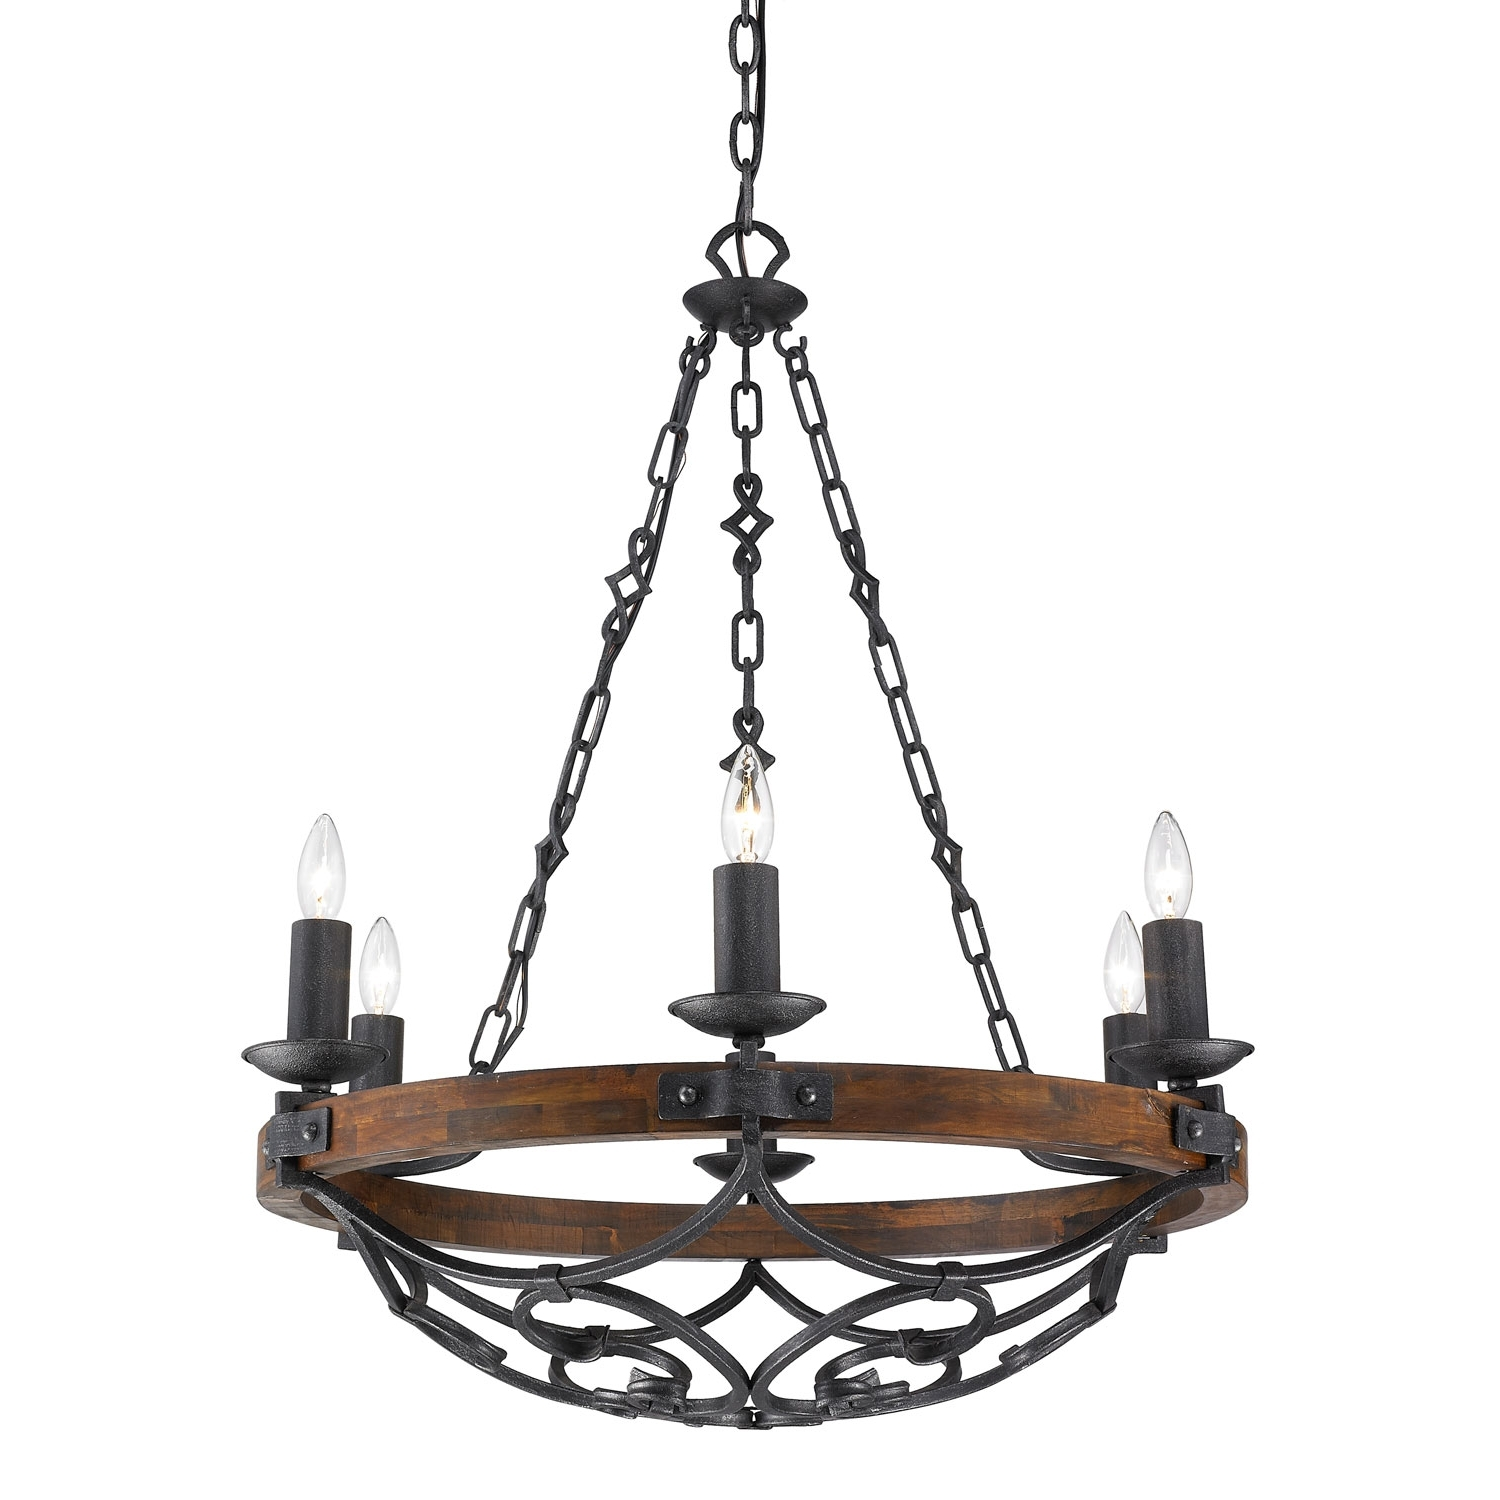 Newest Old World Chandeliers, Kitchen Chandeliers From Bellacor In Black Iron Chandeliers (View 8 of 20)